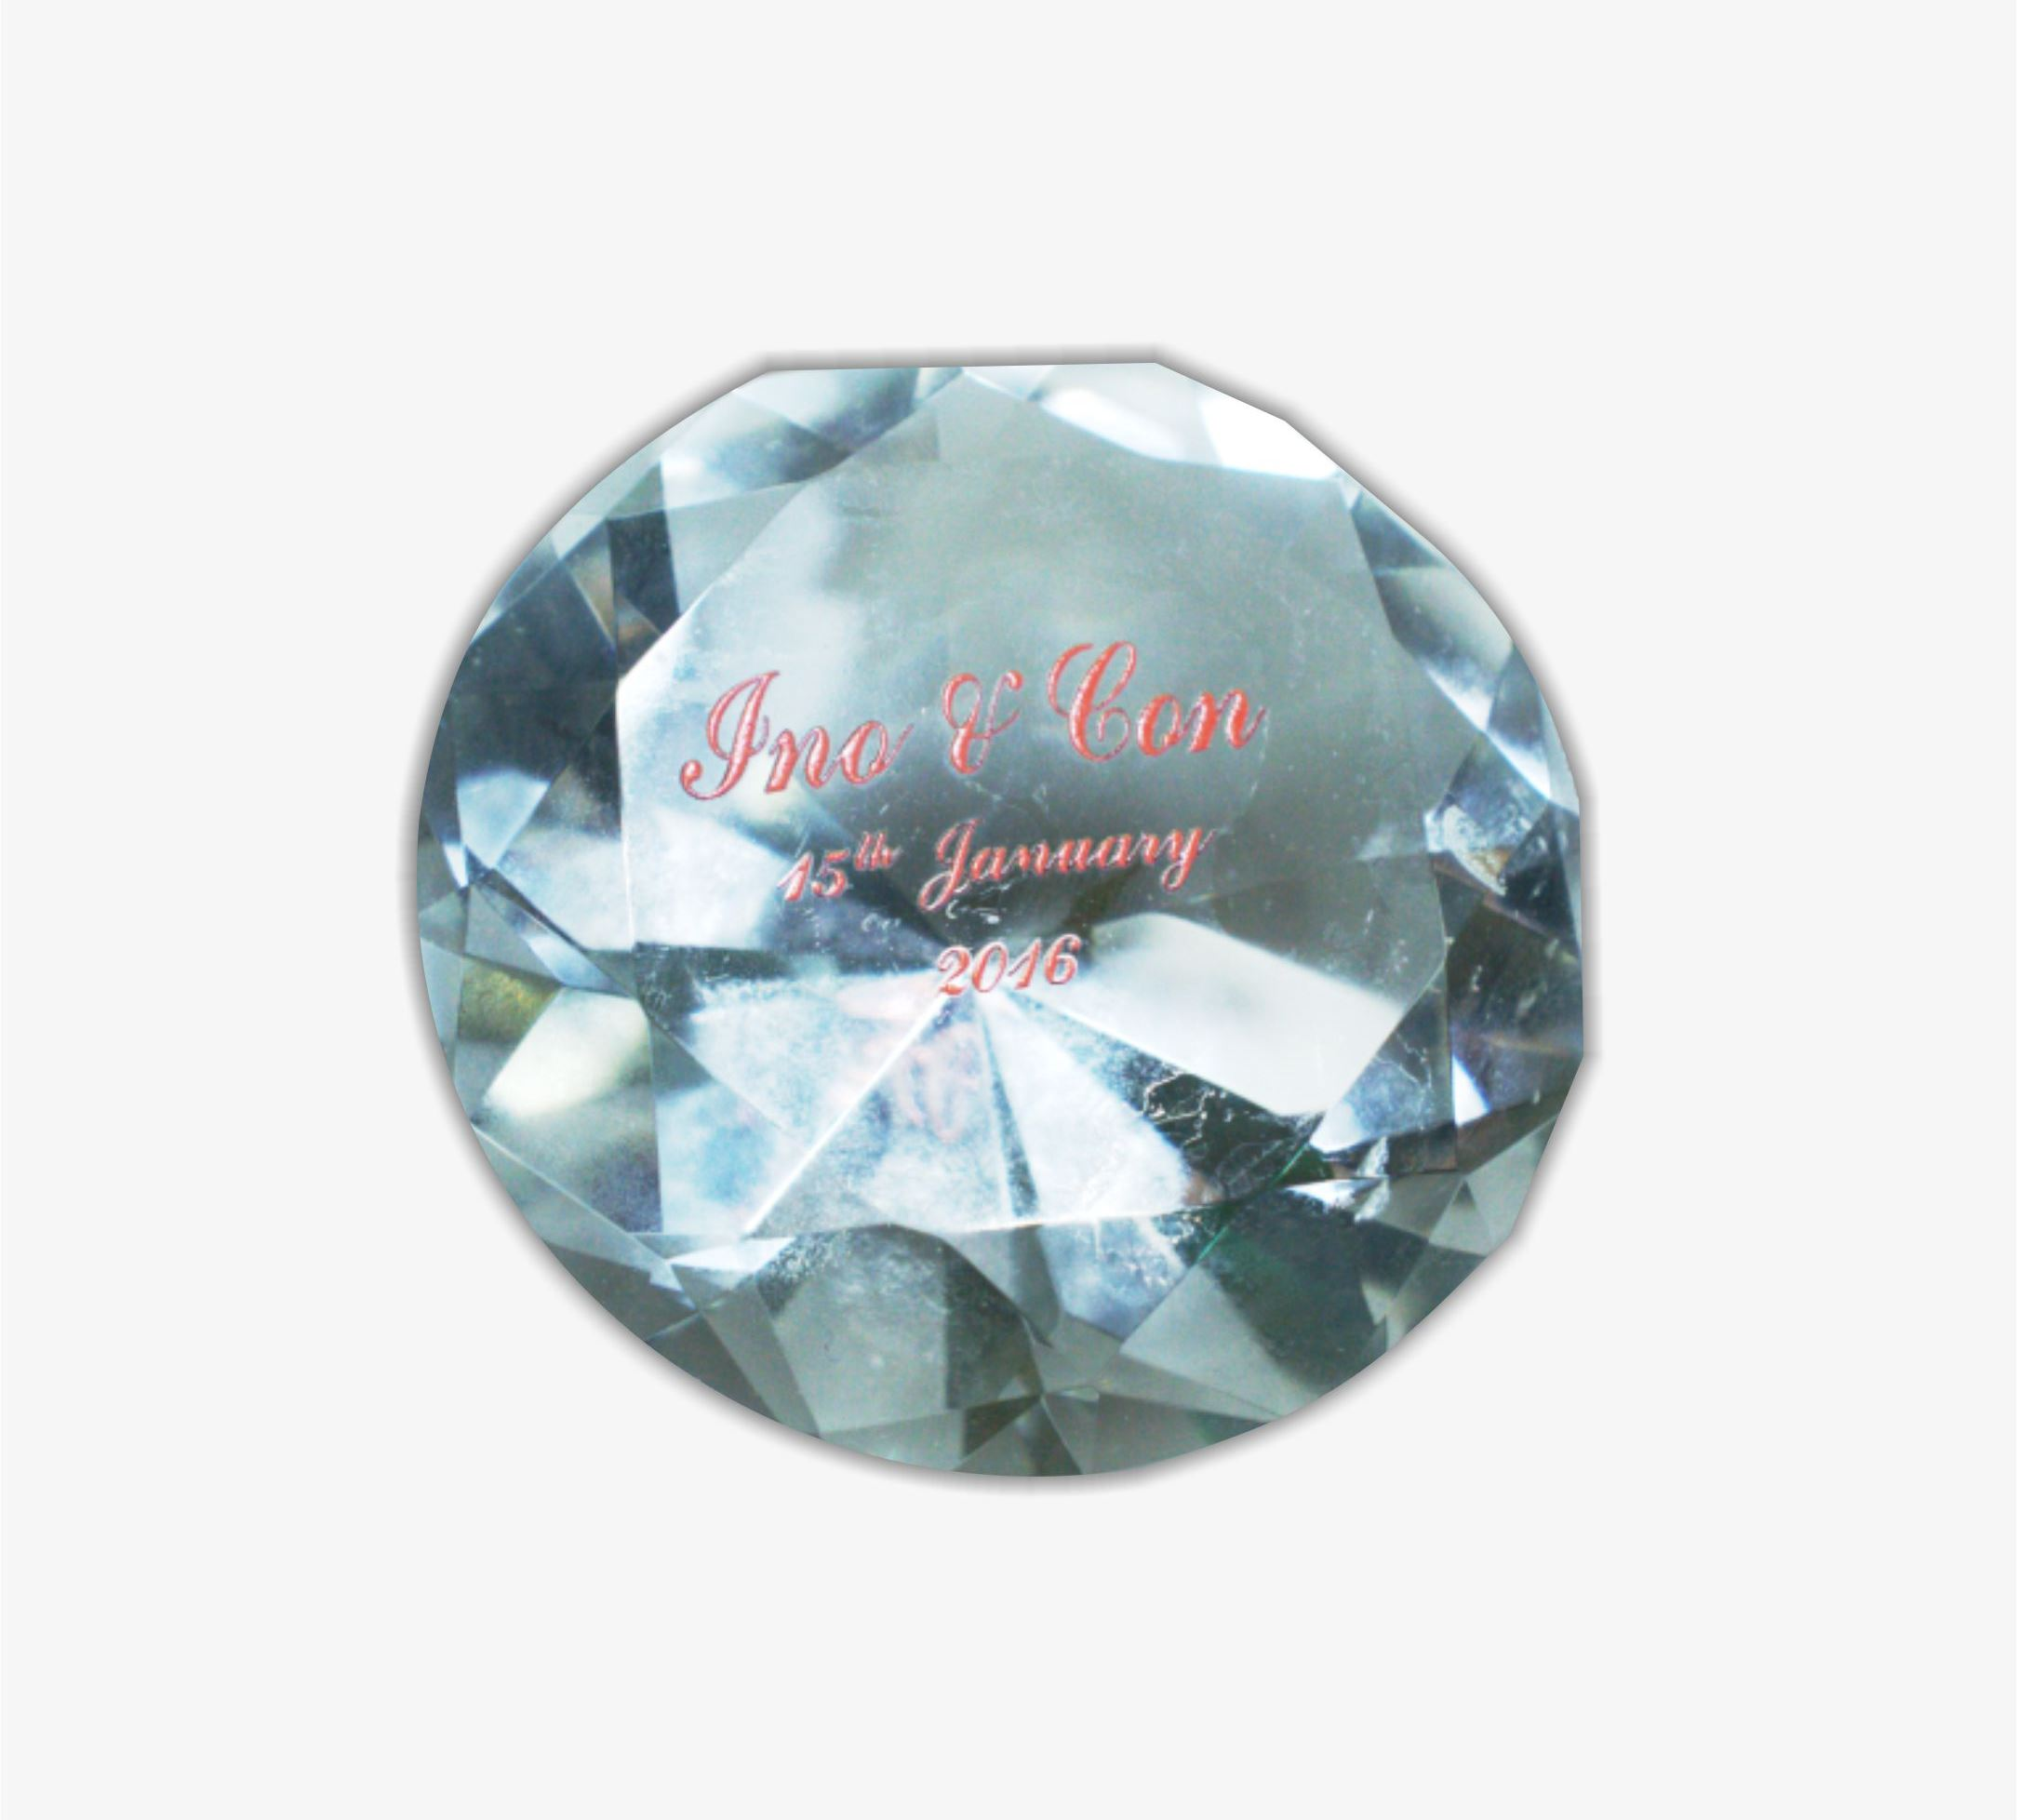 Personalized Crystal Paperweight Wedding Souvenir